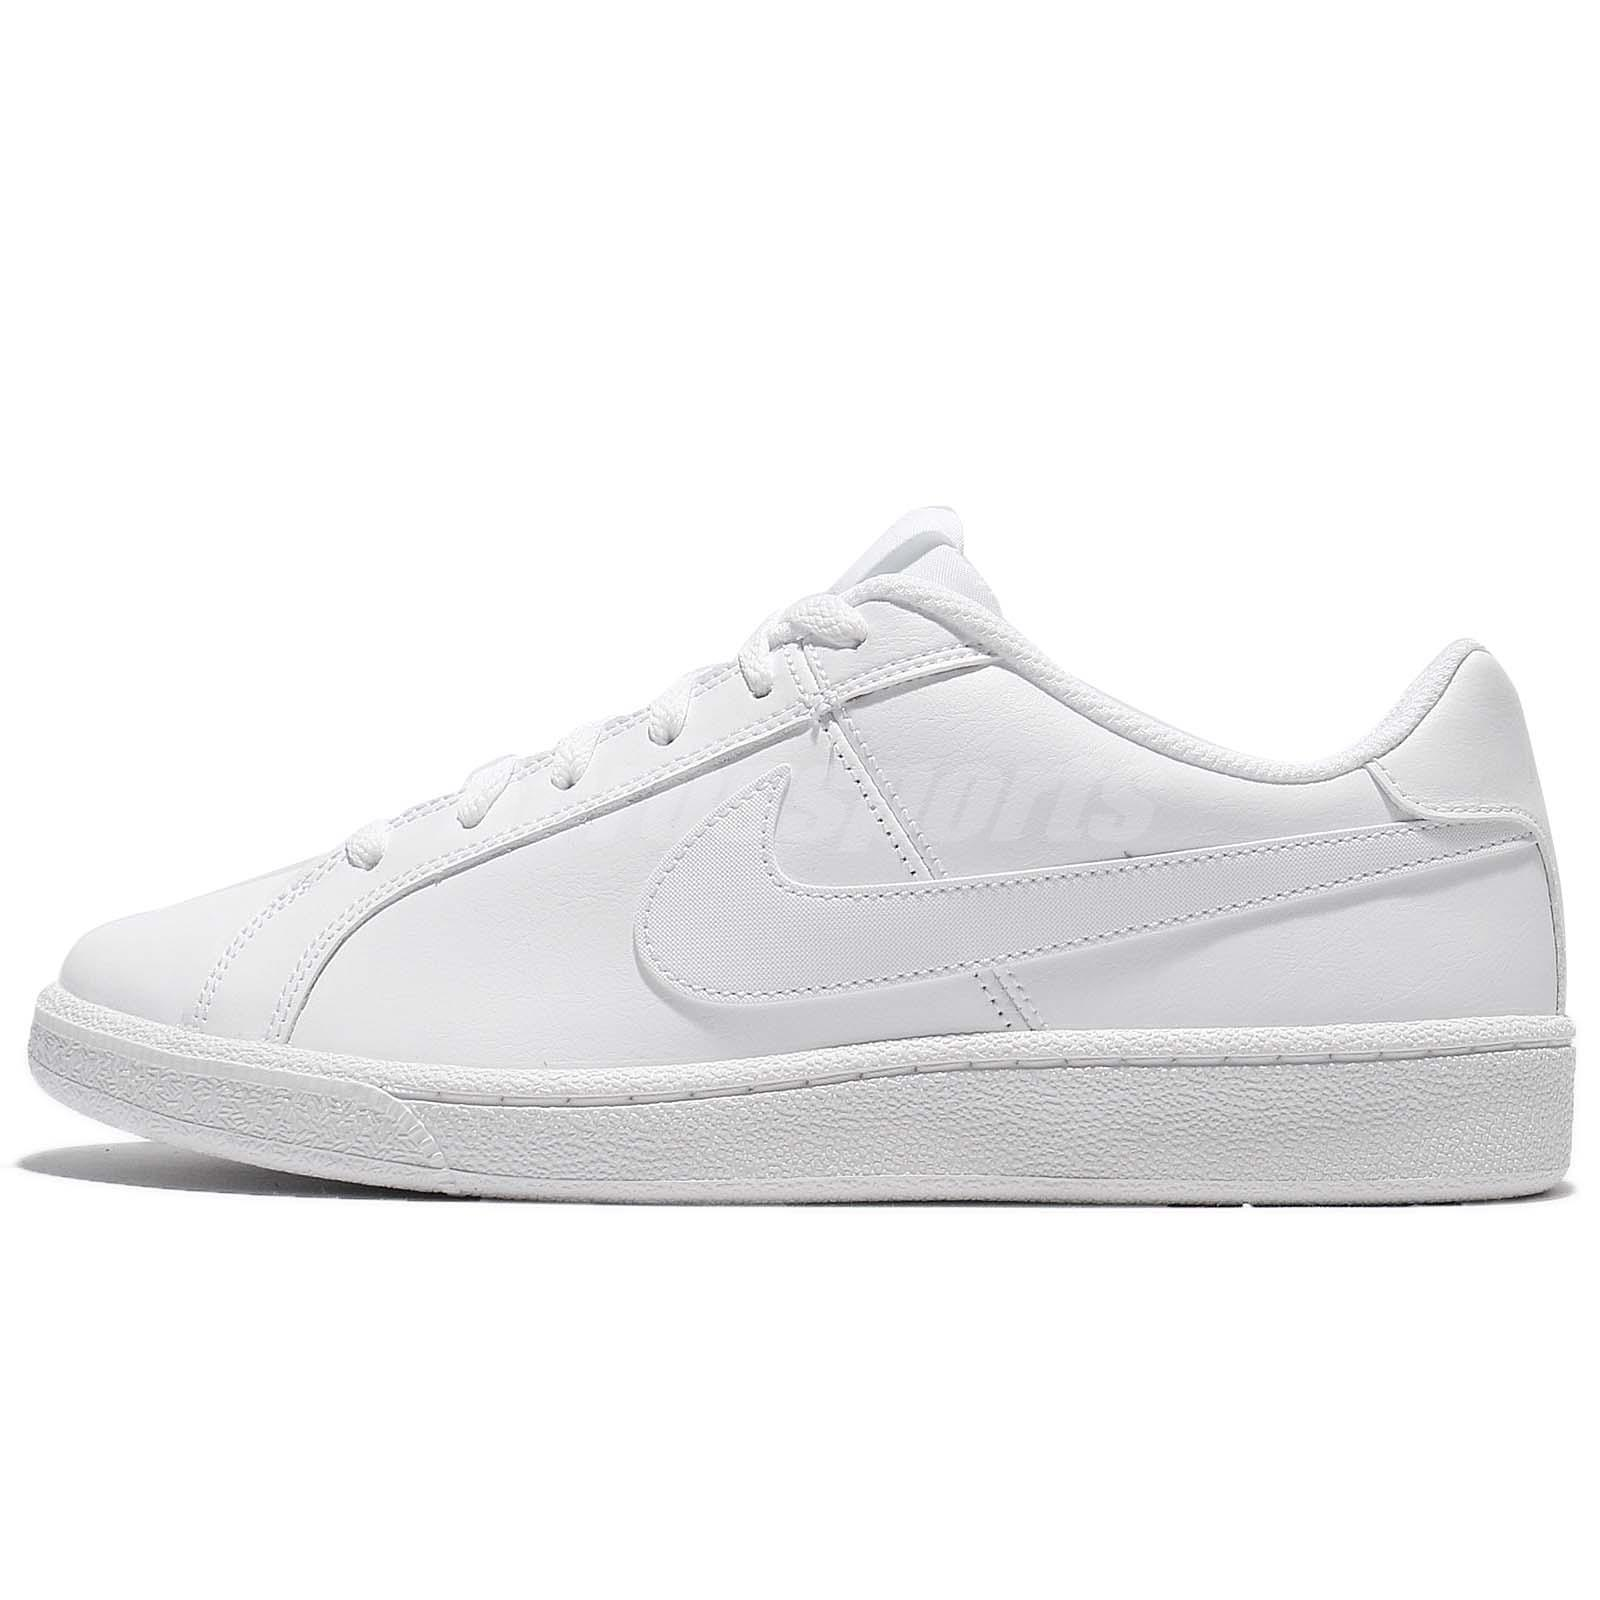 Nike Court Royale Triple White Leather Men Casual Shoes Sneakers